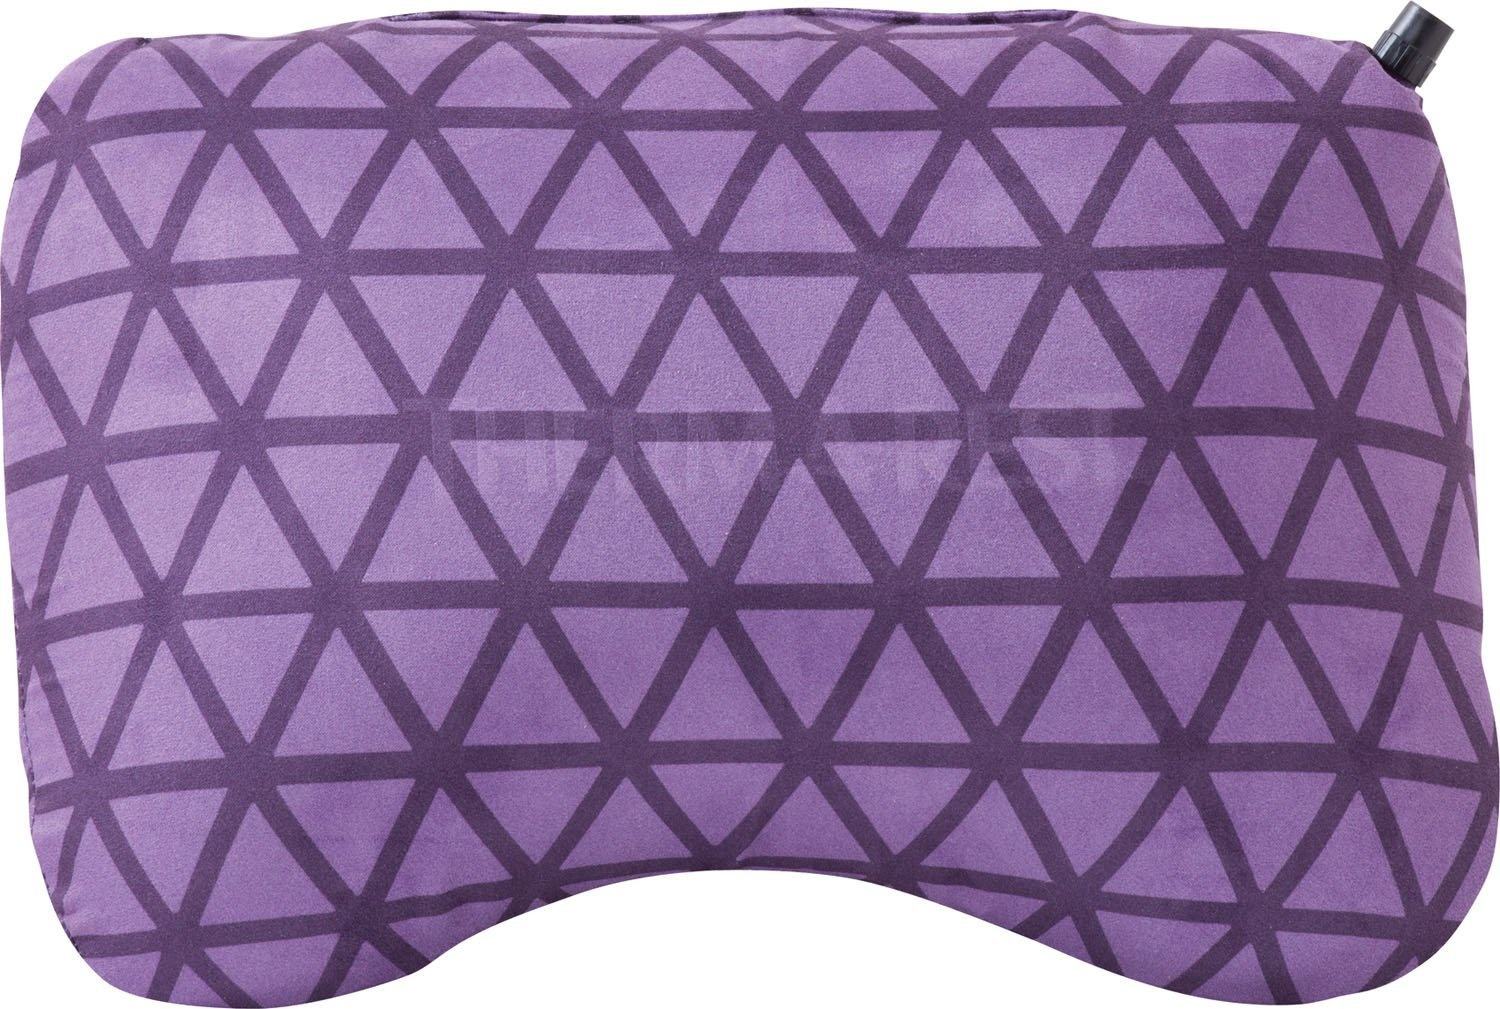 (Amethyst, One Size) - Thermarest air head pillow.  Delivery is Free  no minimum